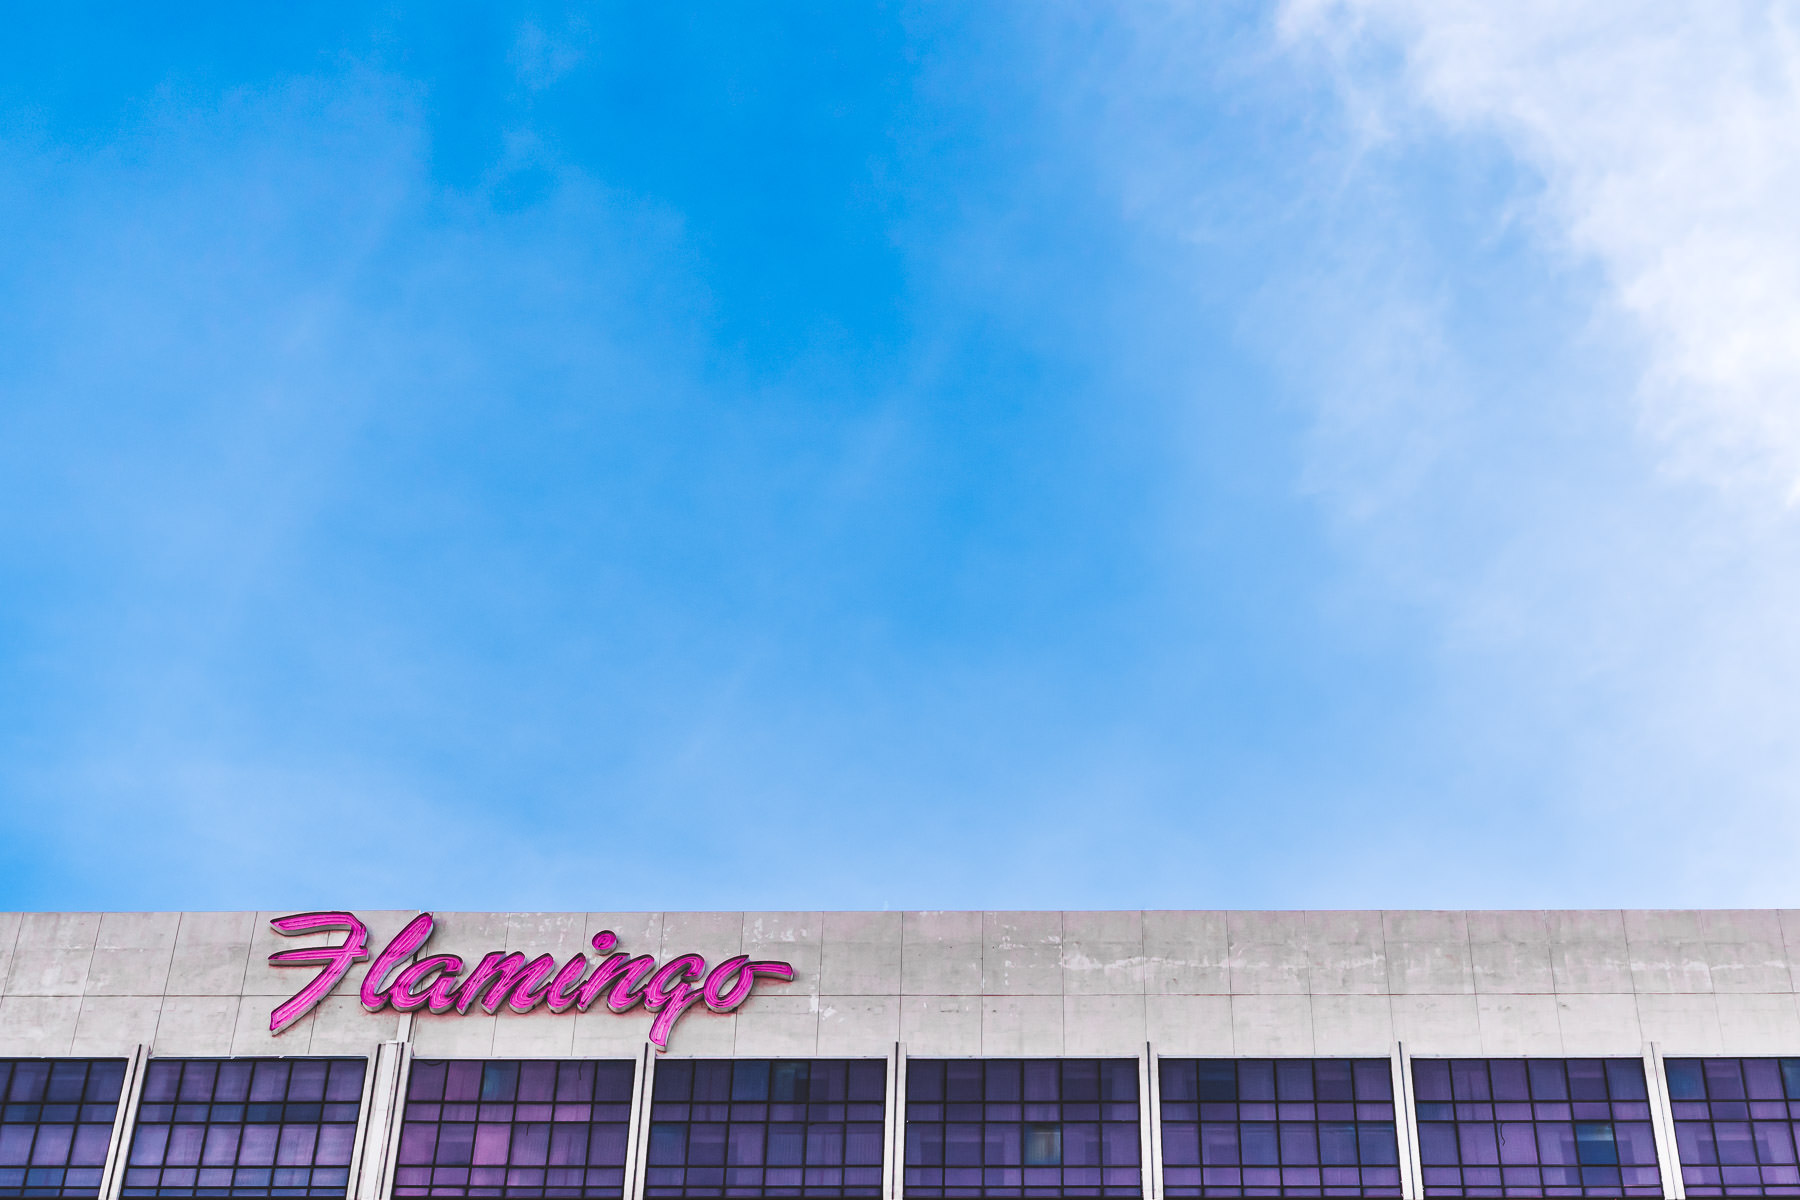 The sign atop on of the hotel towers at the Flamingo Las Vegas Resort.